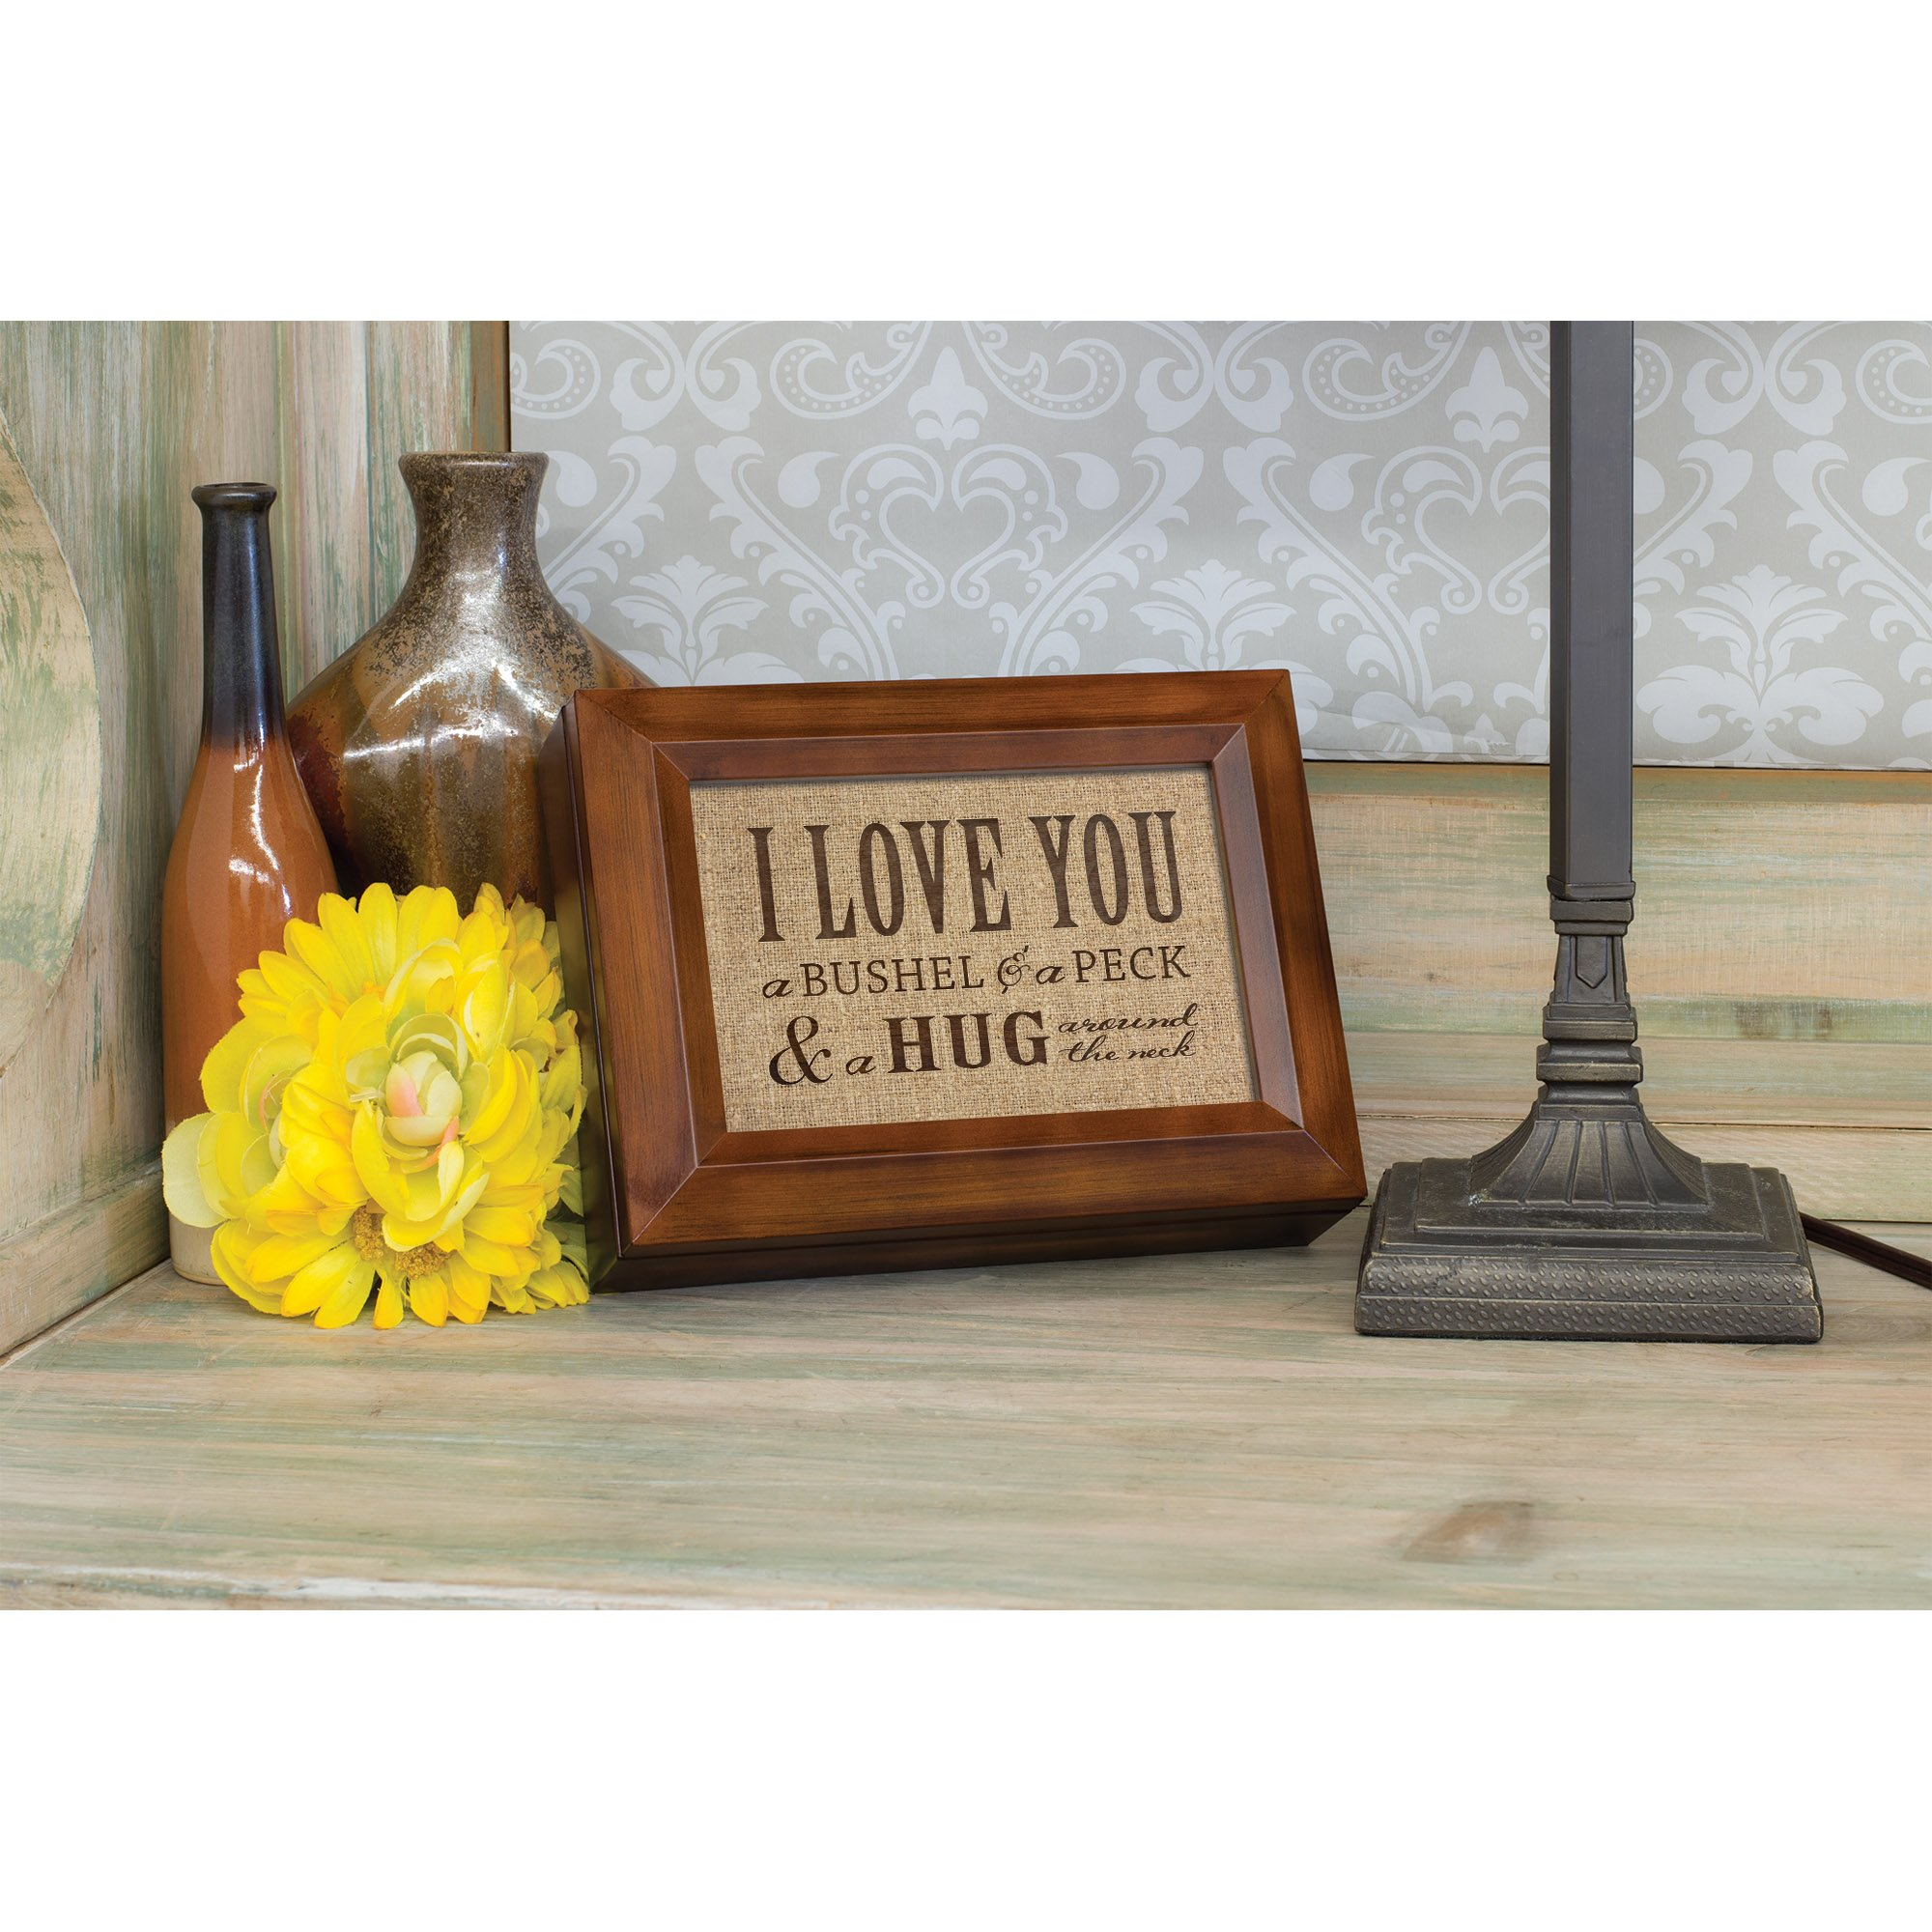 I Love You A Bushel & A Peck Wood Finish Jewelry Music Box - Plays Tune You Are My Sunshine by Cottage Garden (Image #5)